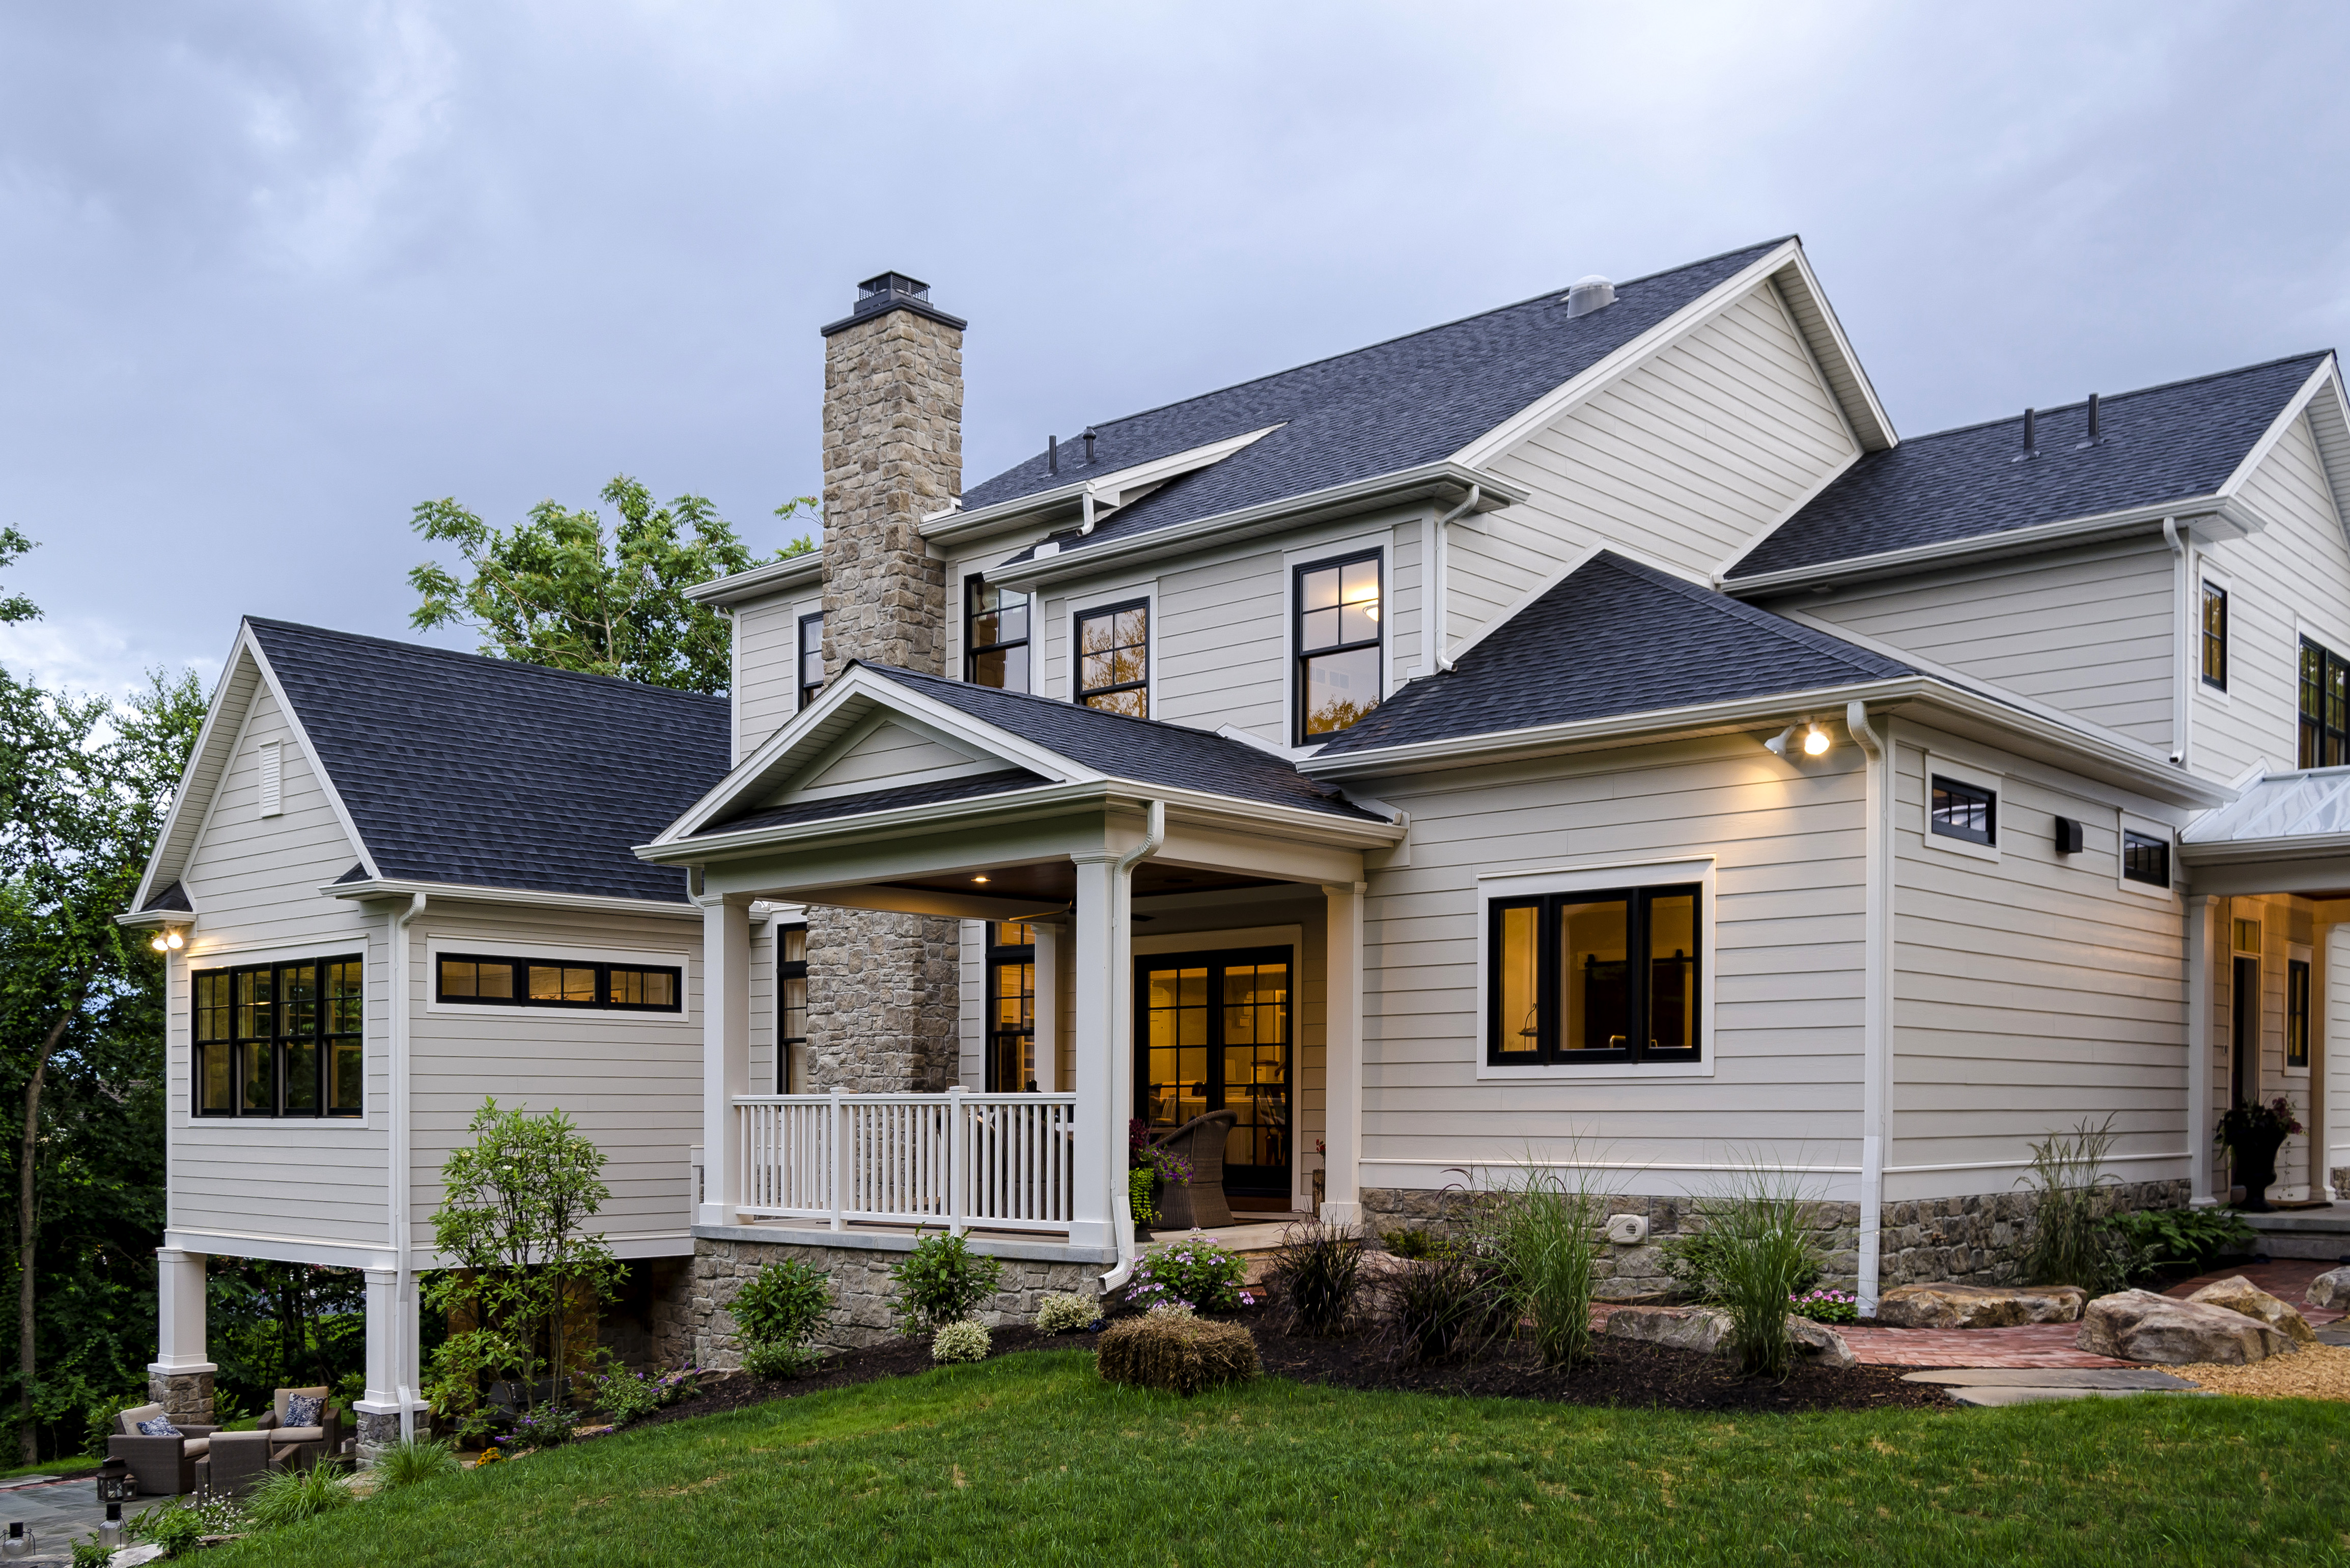 Real Hardie Homes Contest Submission HardiePlank ColorPlus East Coast HZ5 Cobble Stone